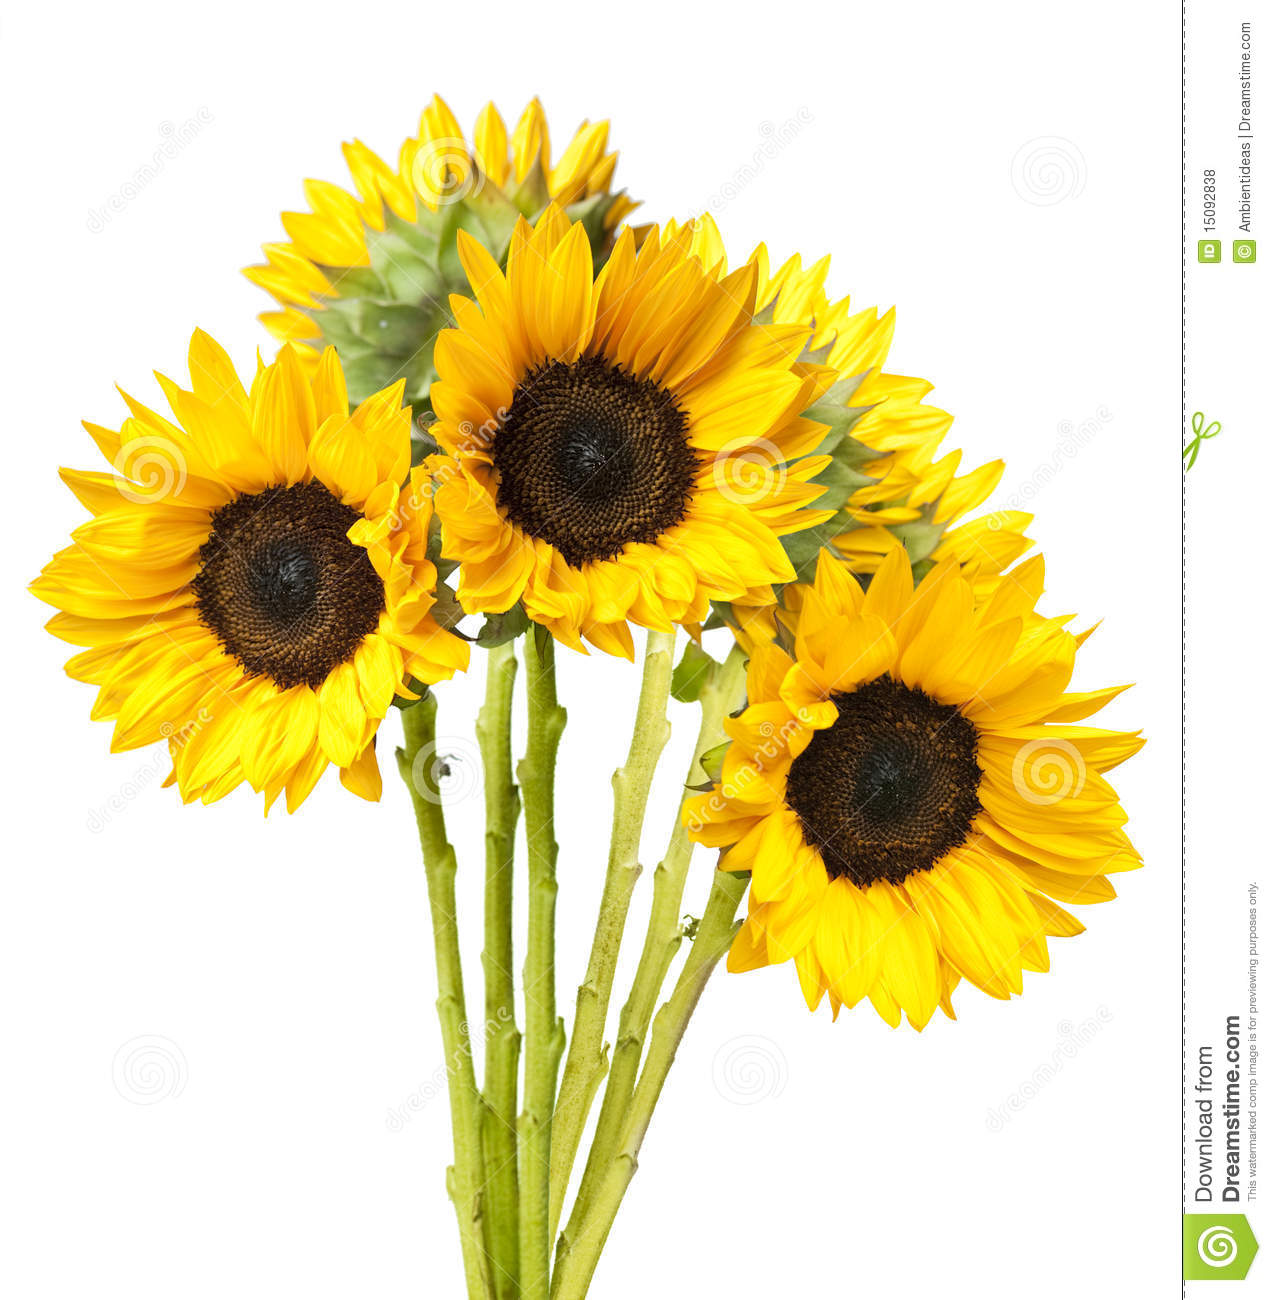 Sunflower Bouquet Isolated On White Royalty Free Stock Photos   Image